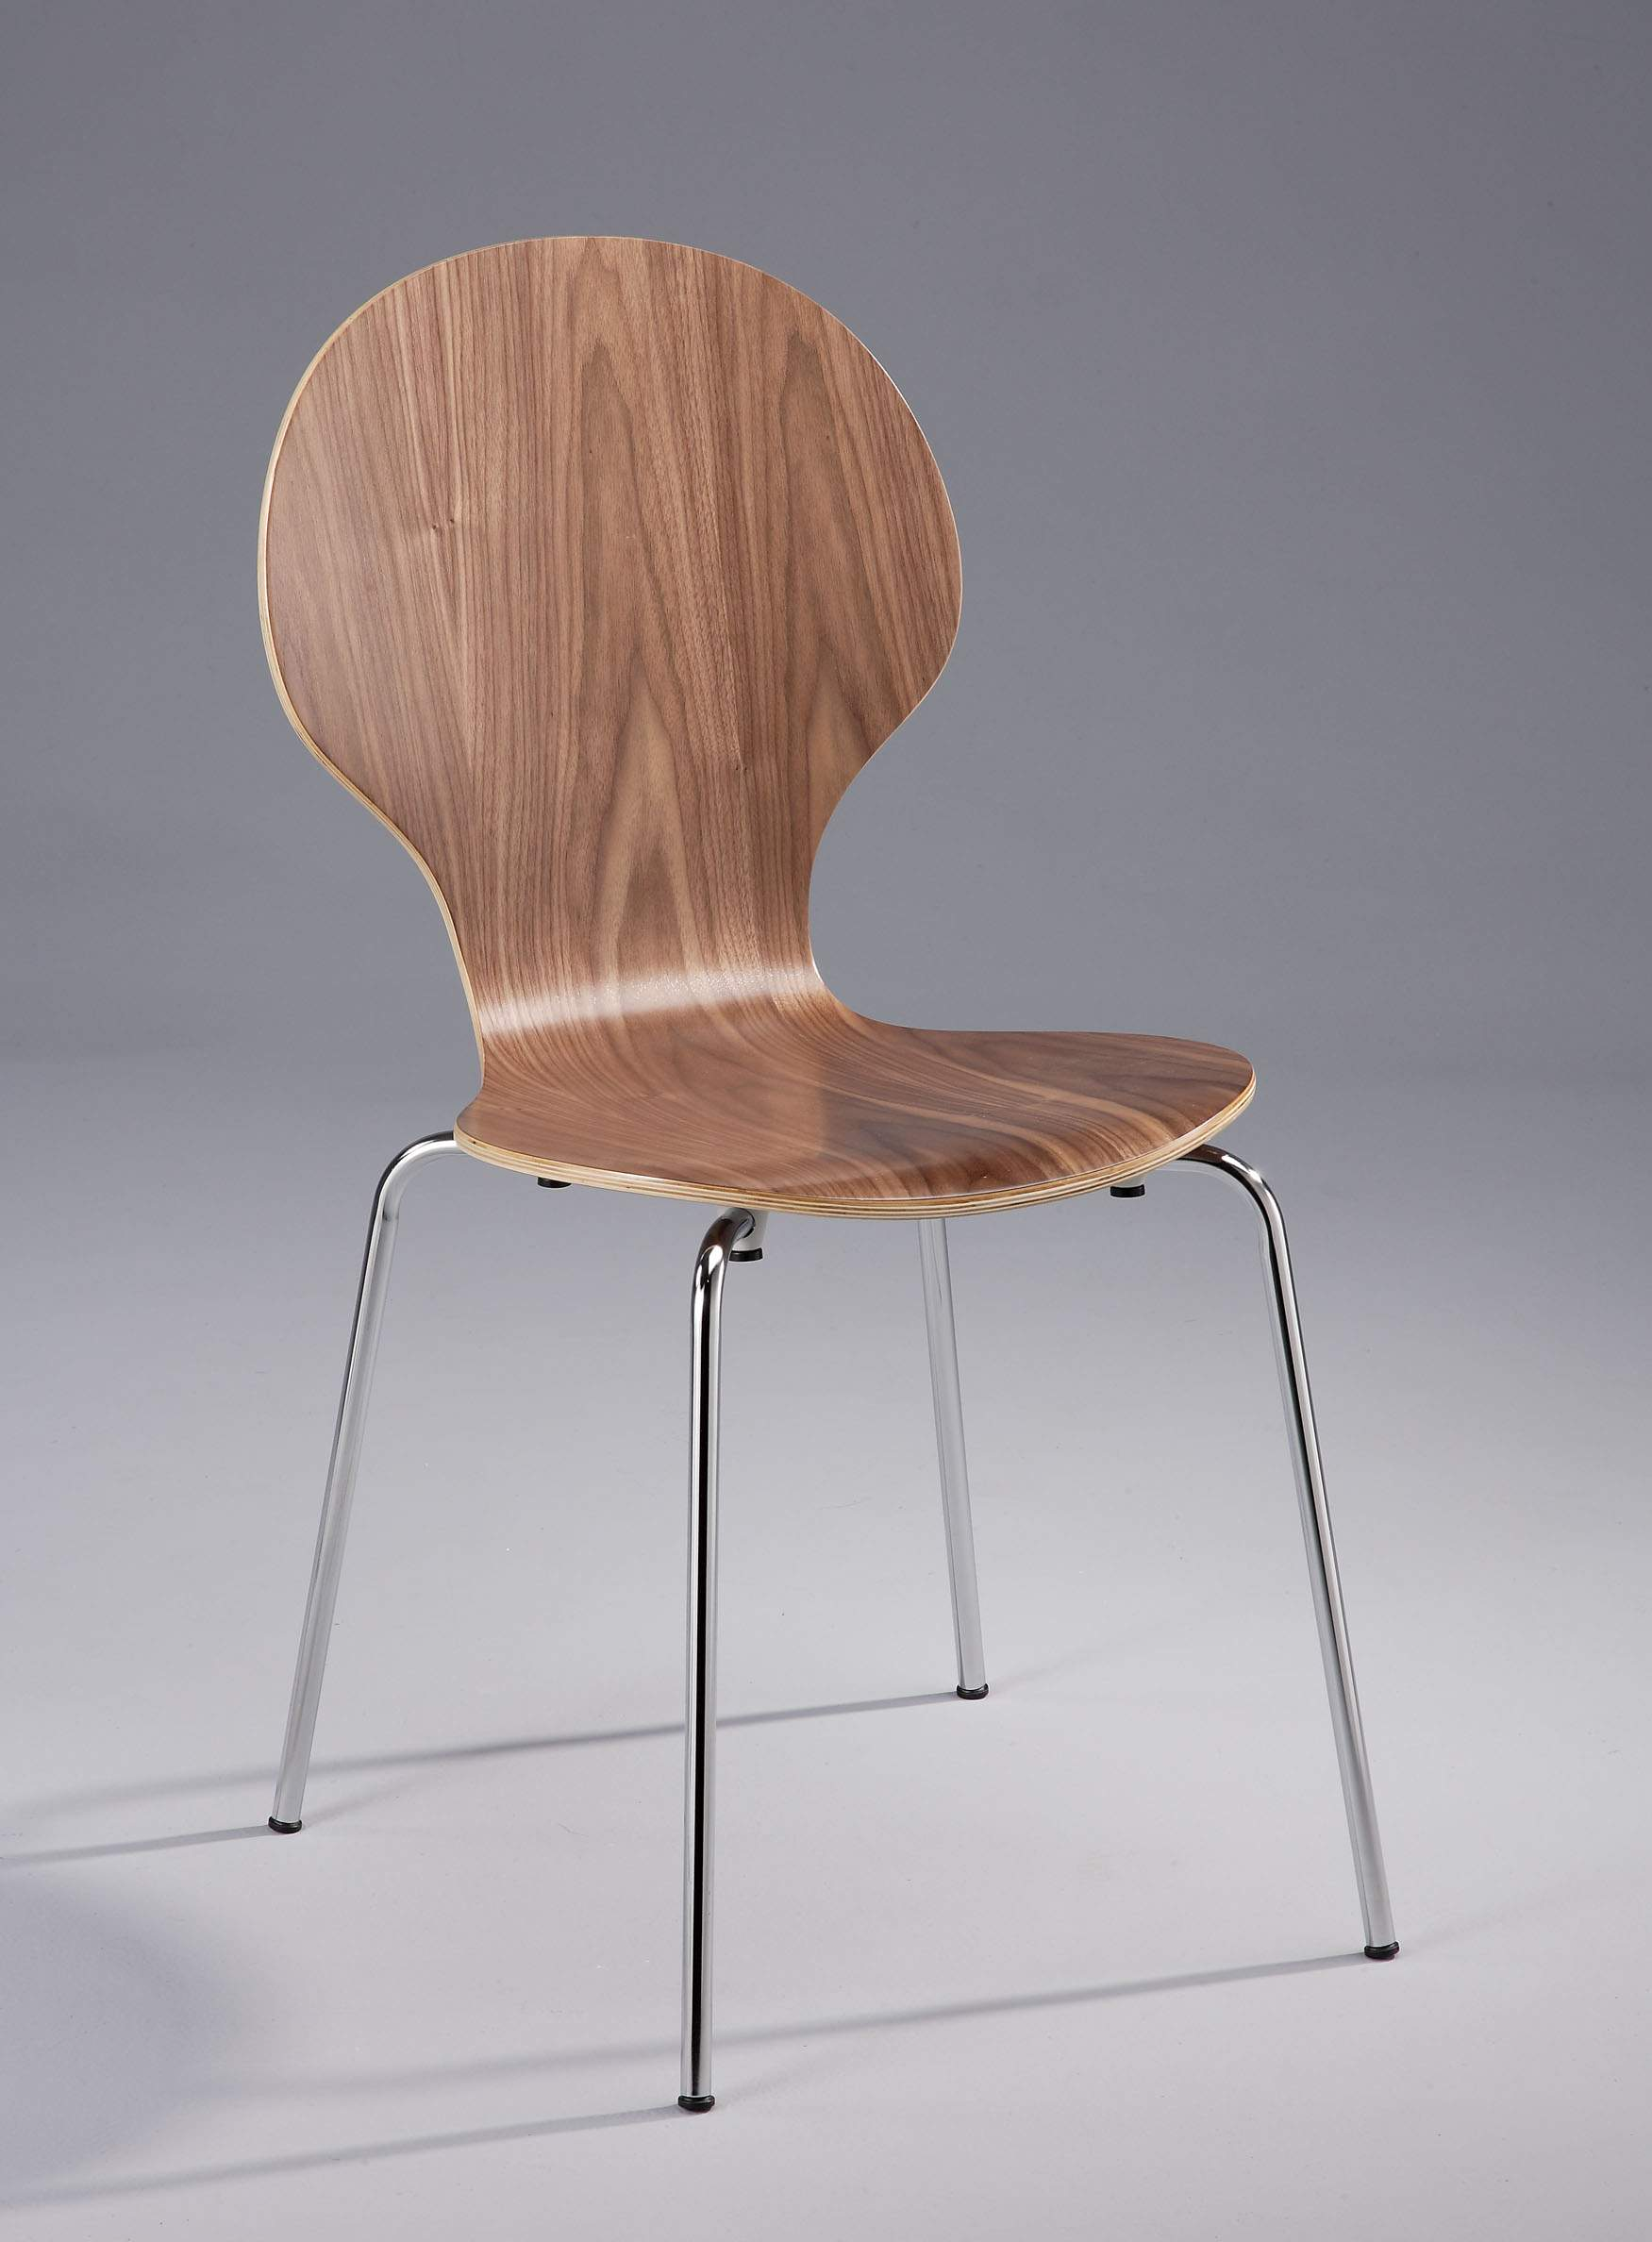 Sam Yi Furniture Manufacturer in Dining Room Chair Home  : SC008 4620walnut20veneer from www.samyi.com.tw size 1751 x 2376 jpeg 178kB